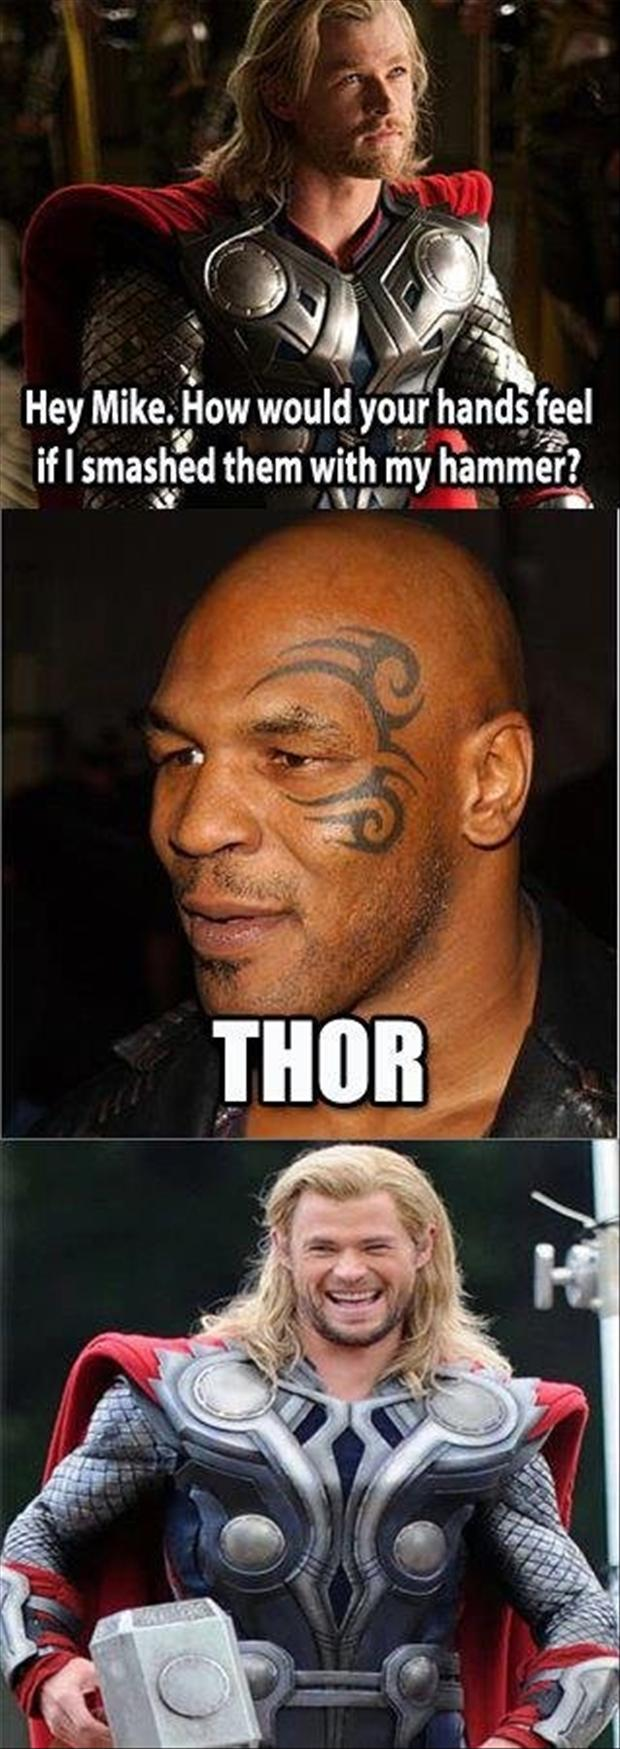 thor-mike-tyson-funny-pictures.jpg